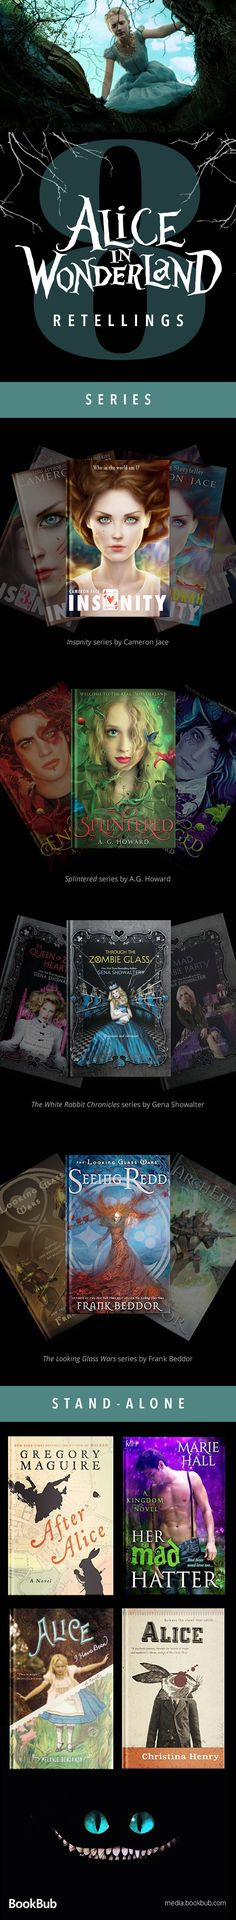 8 fairytale retellings based on Alice's Adventures in Wonderland. These fairytale retellings and great for teens and for adults!